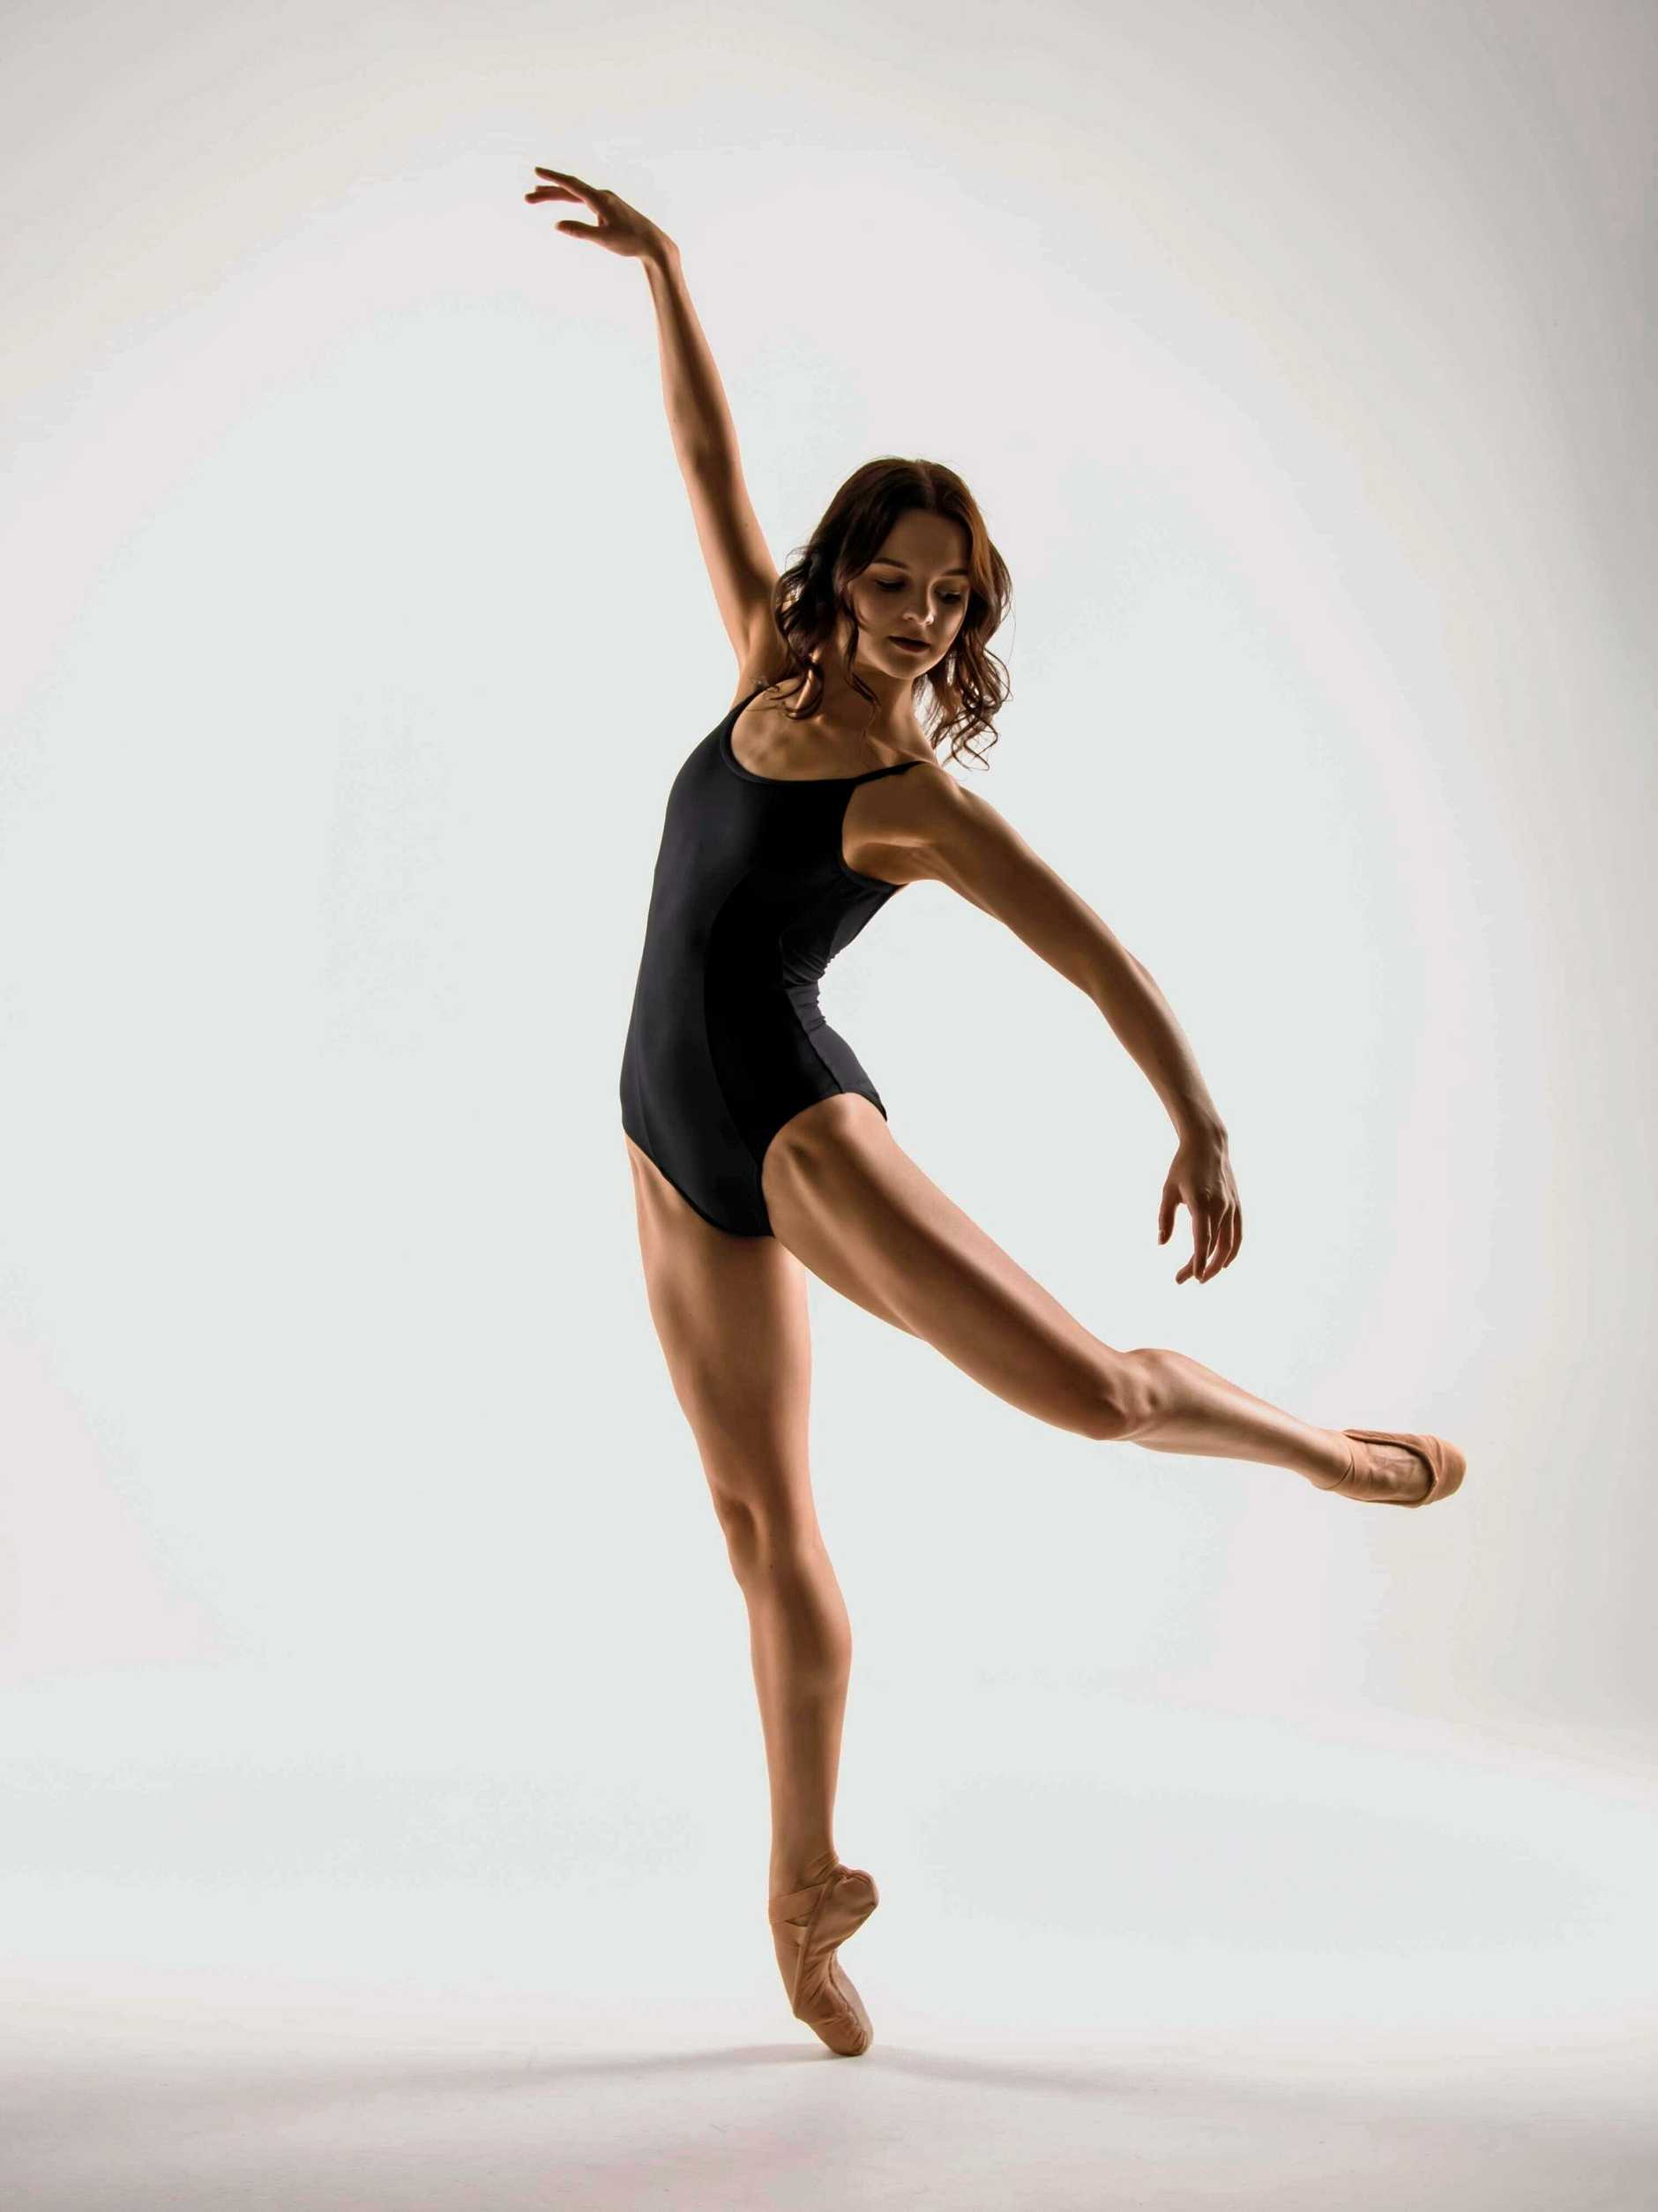 Georgia Baxter, 17, has been offered a position at prestigious dance company, Royal New Zealand Ballet after years of dedication in the industry.